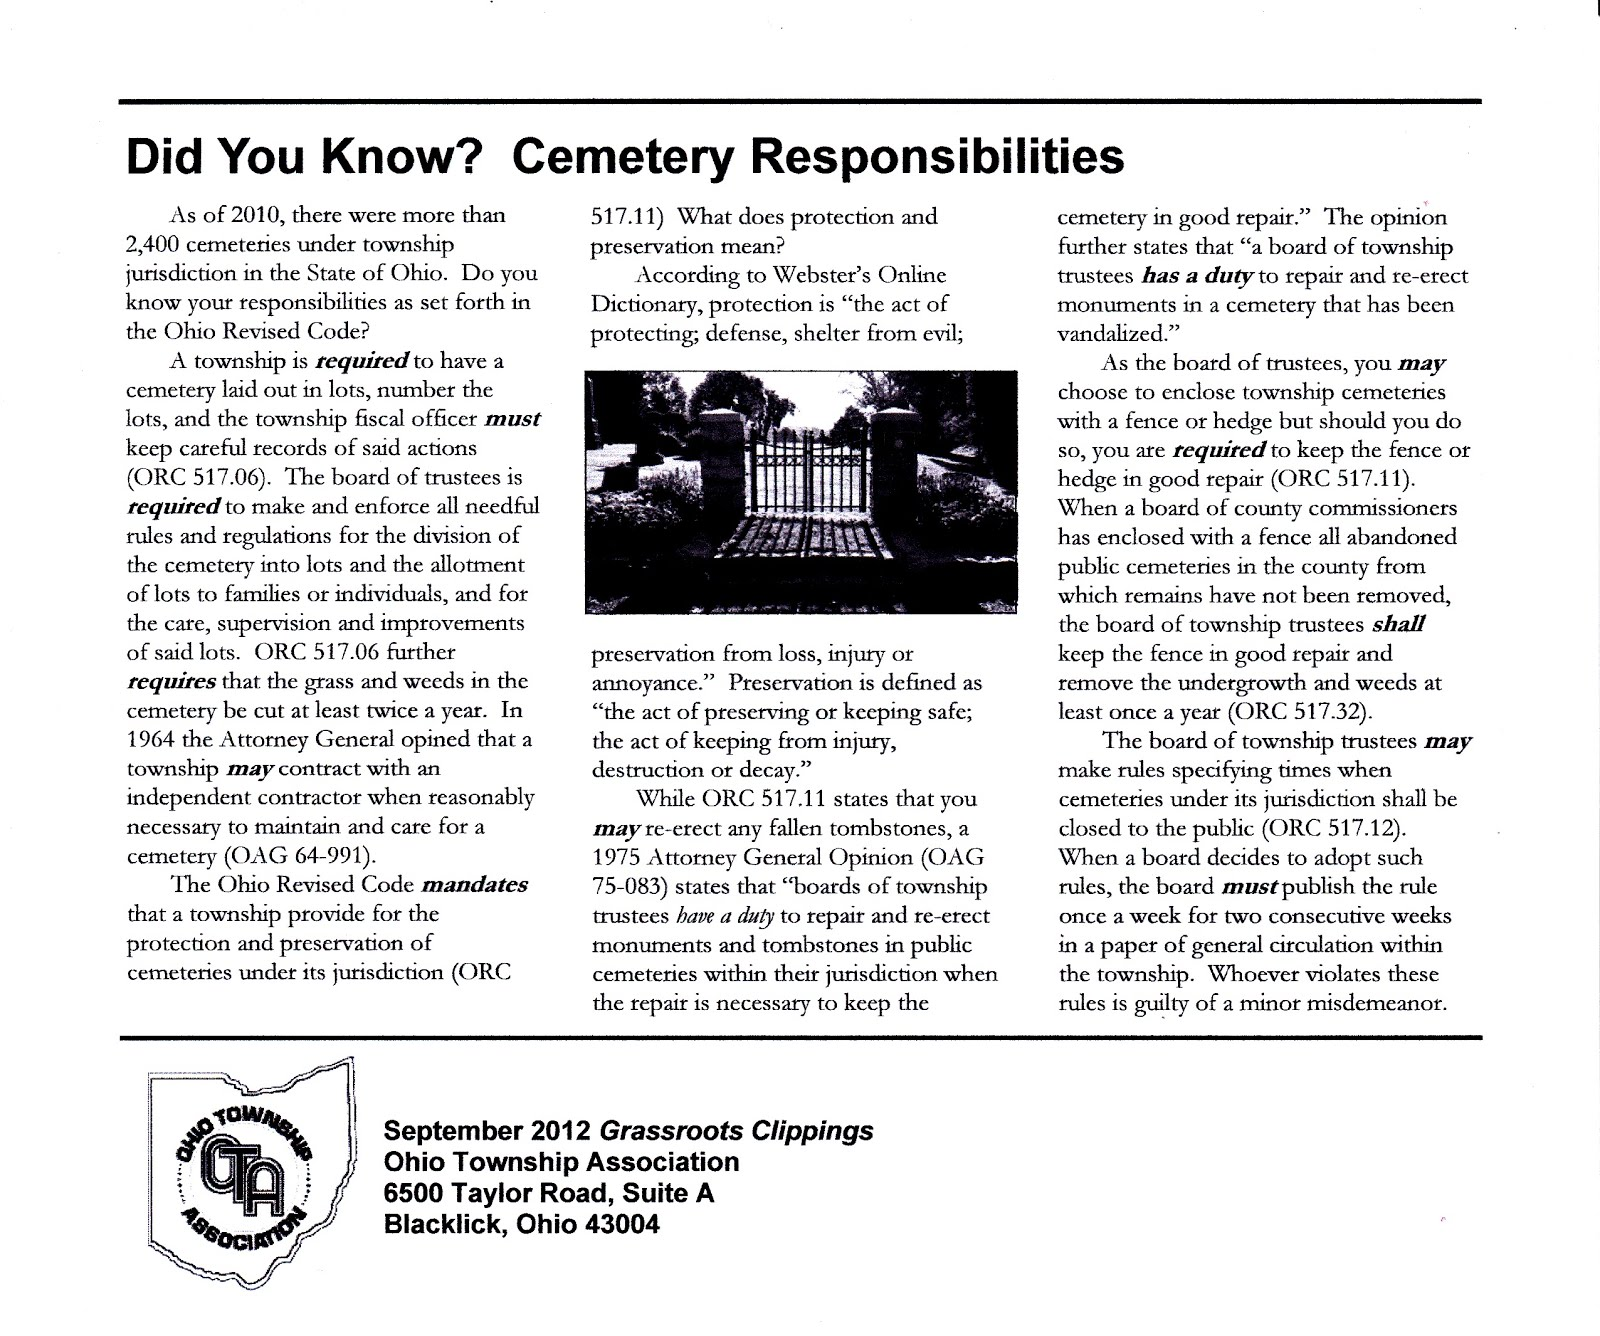 "OHIO TOWNSHIP ASSOCIATION - ""DID YOU KNOW?"""